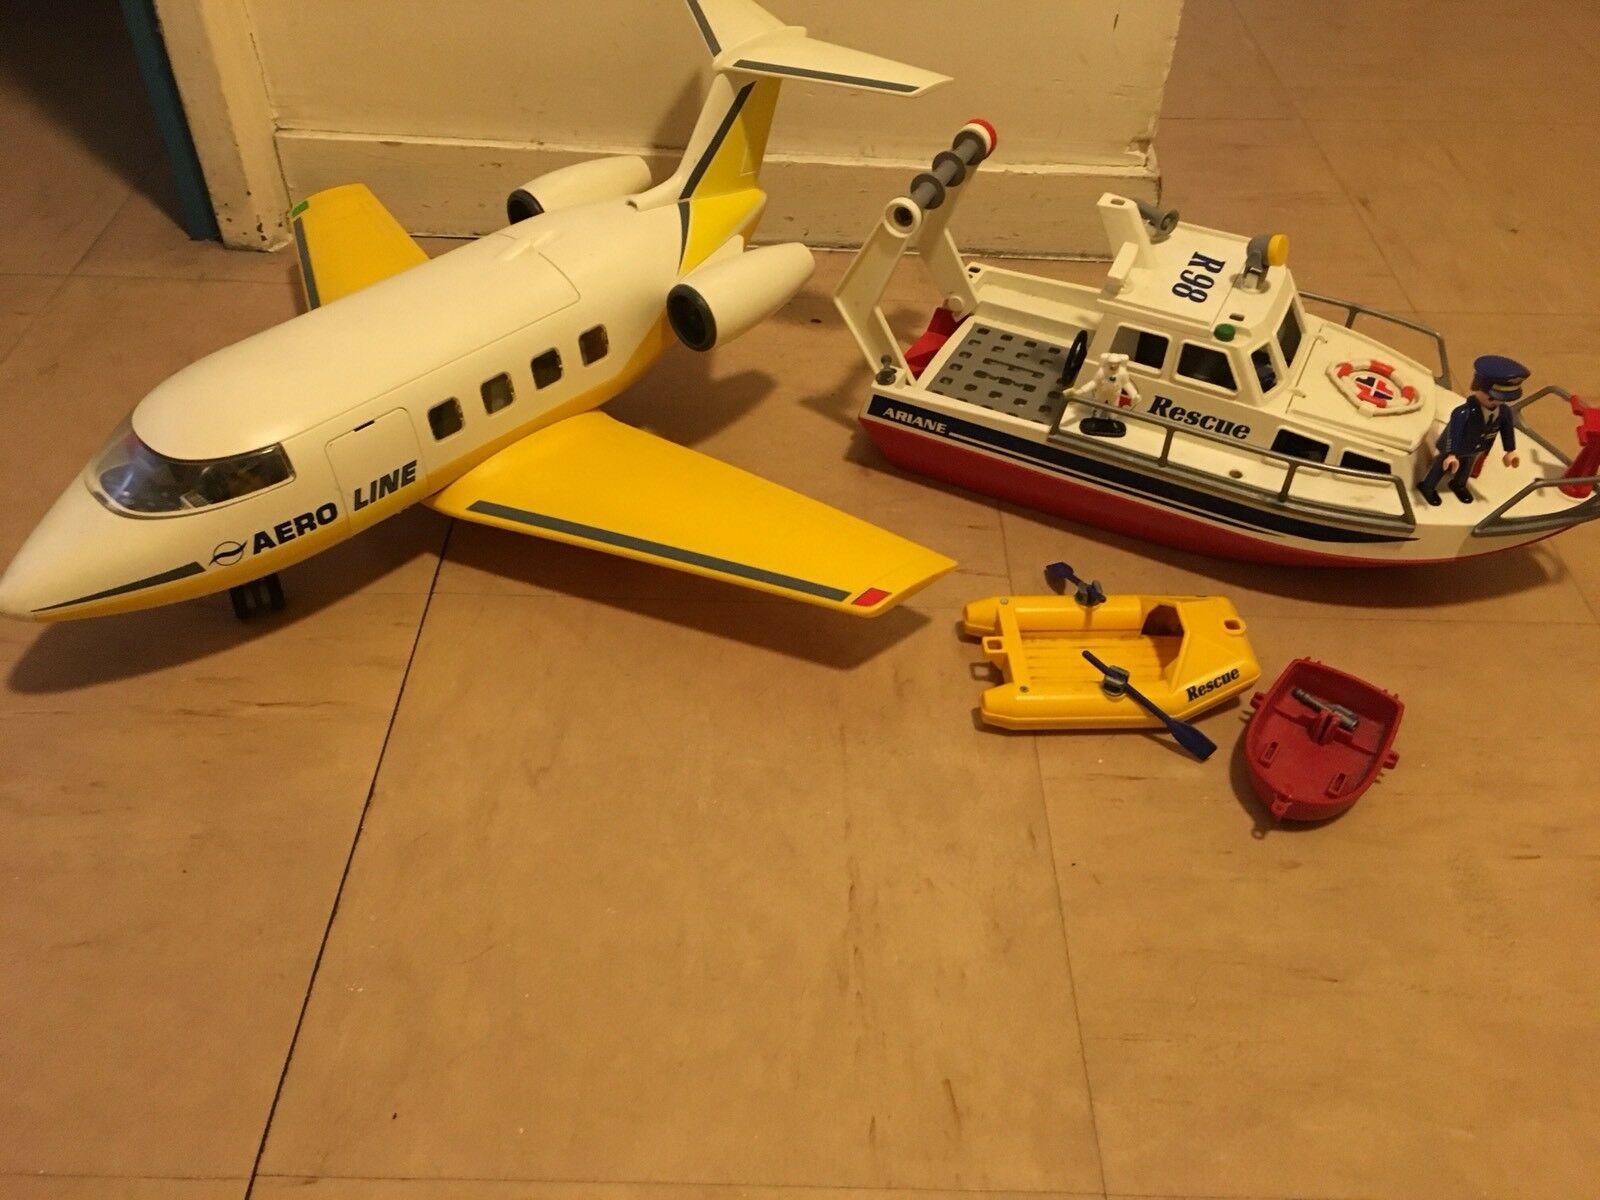 Lot playmobil plane + boat with characters